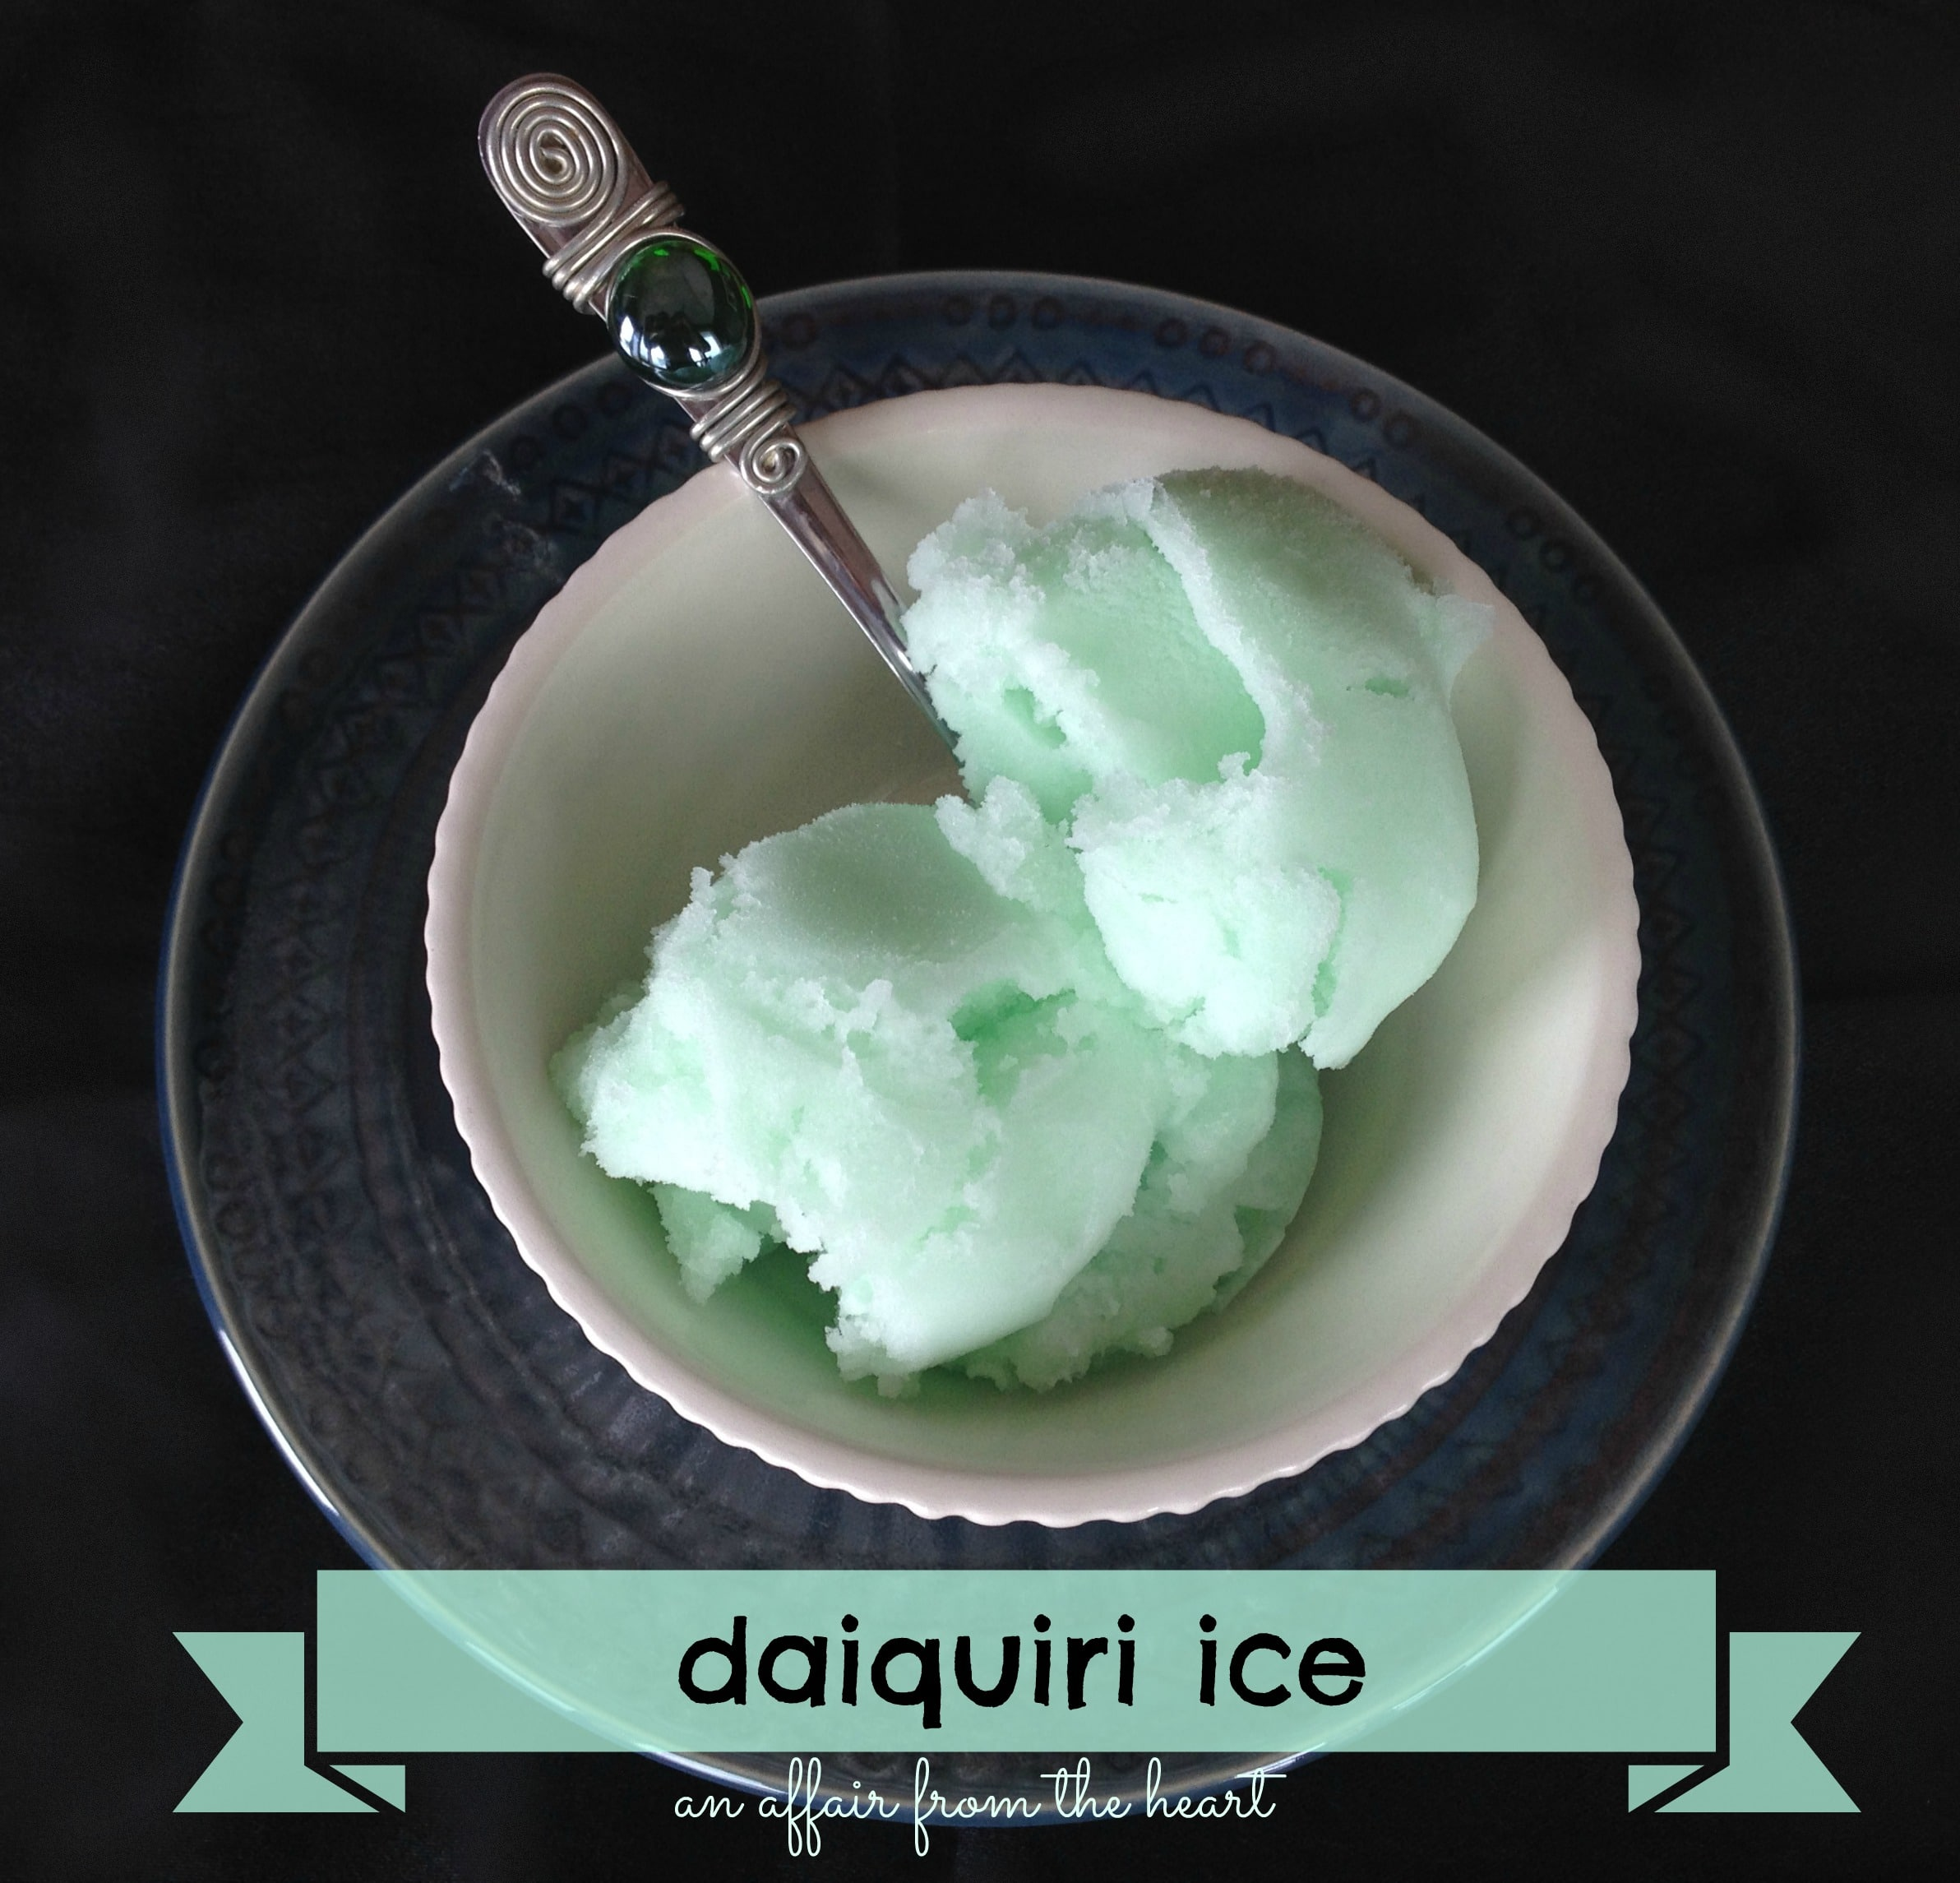 Copy cat baskin robbins daiquiri ice so after you read how to make my favorite ice cream you can scroll down to the bottom of this post and see how to win this fun giveaway we are hosting ccuart Images